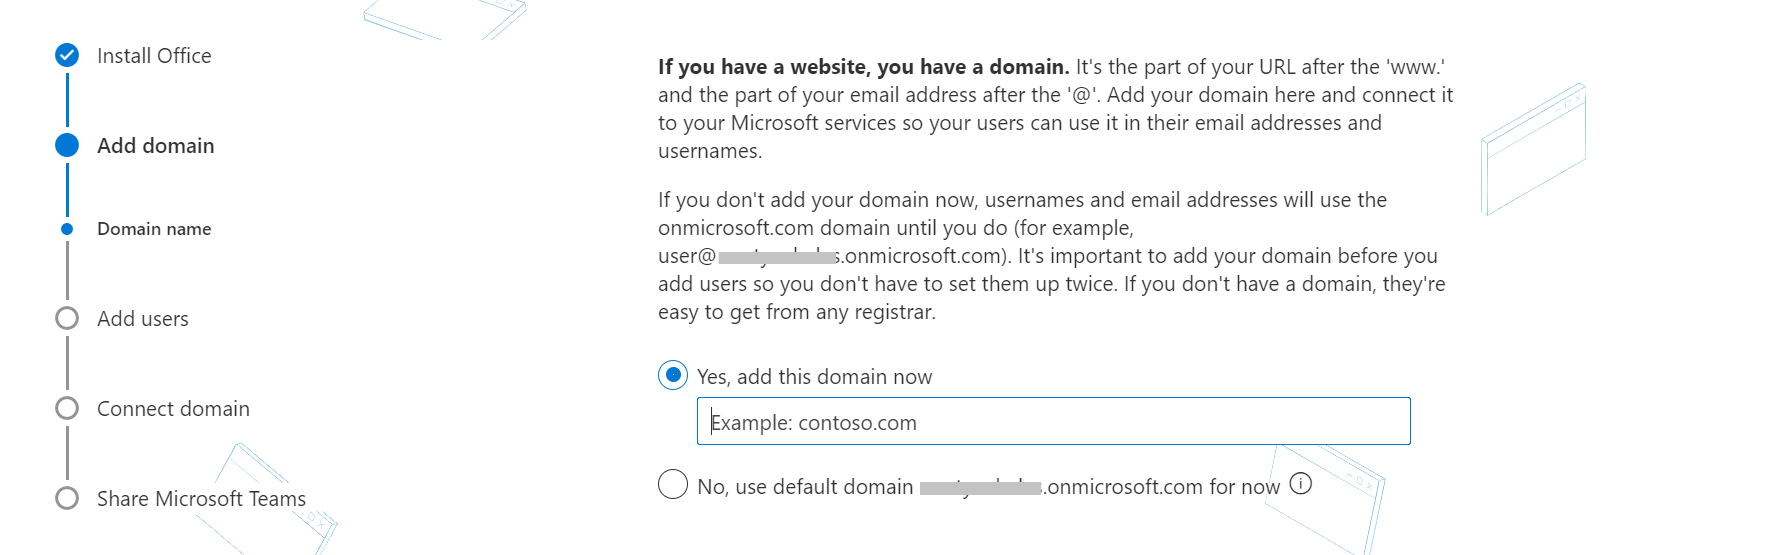 How to Set Up a Custom Email Address With Office 10